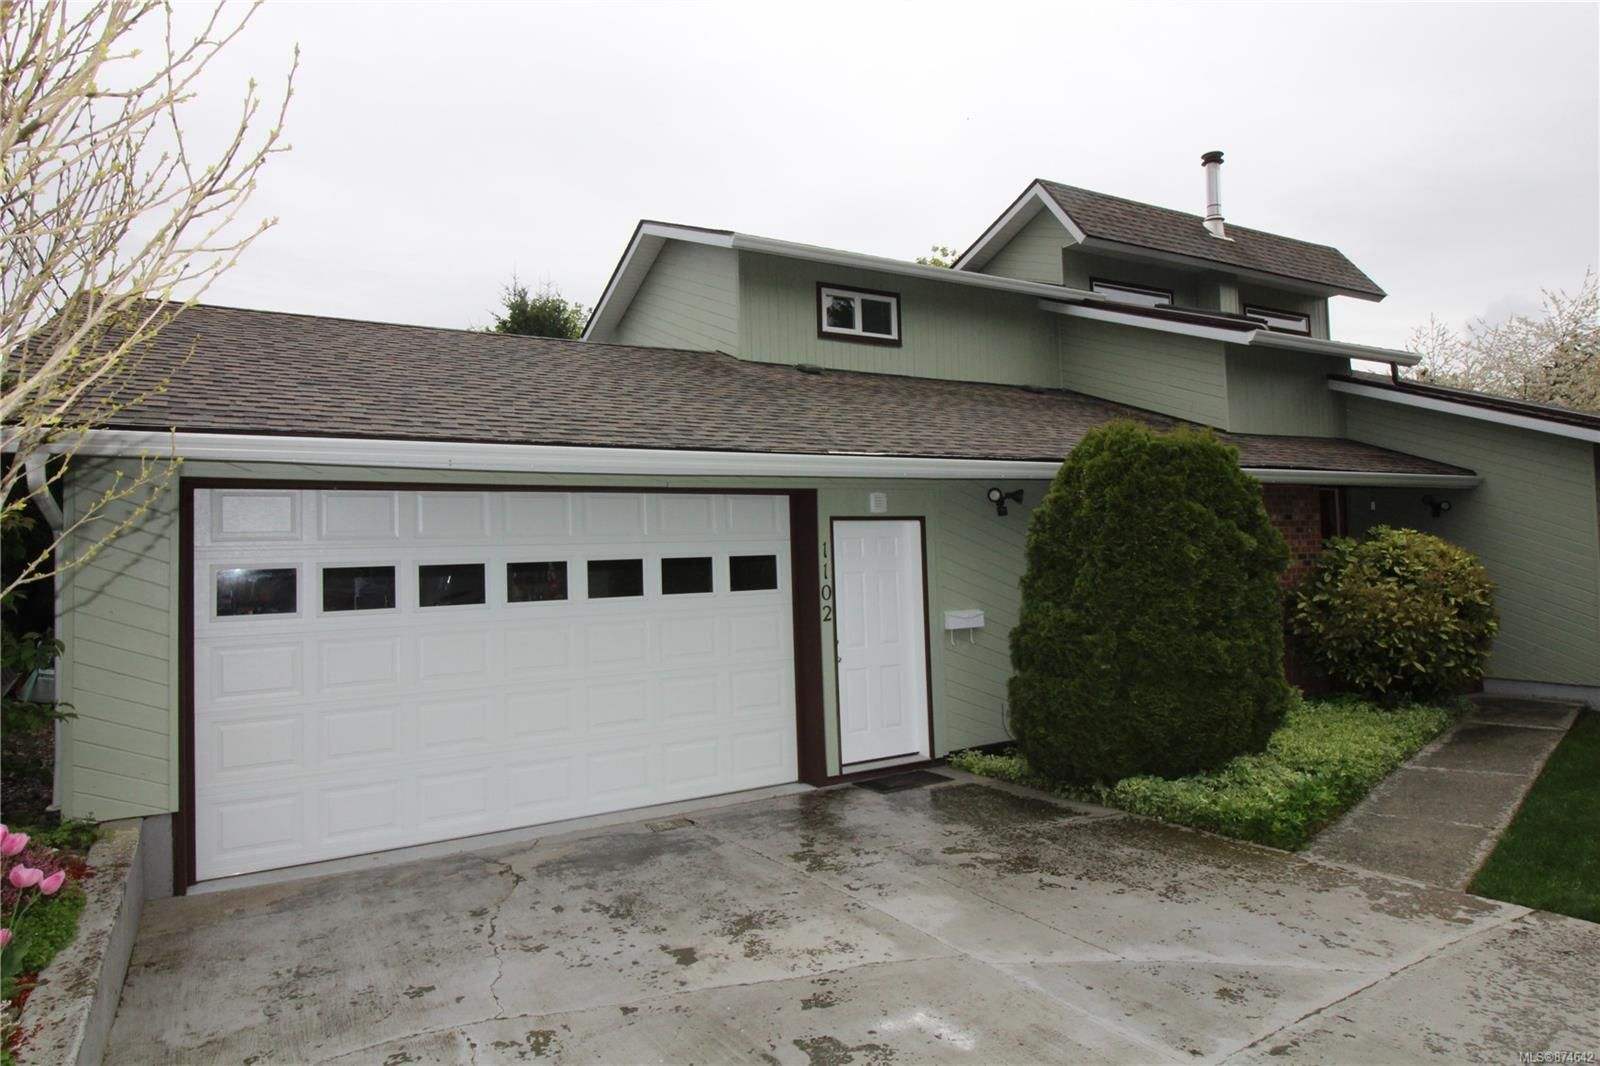 Main Photo: 1102 17th St in : CV Courtenay City House for sale (Comox Valley)  : MLS®# 874642